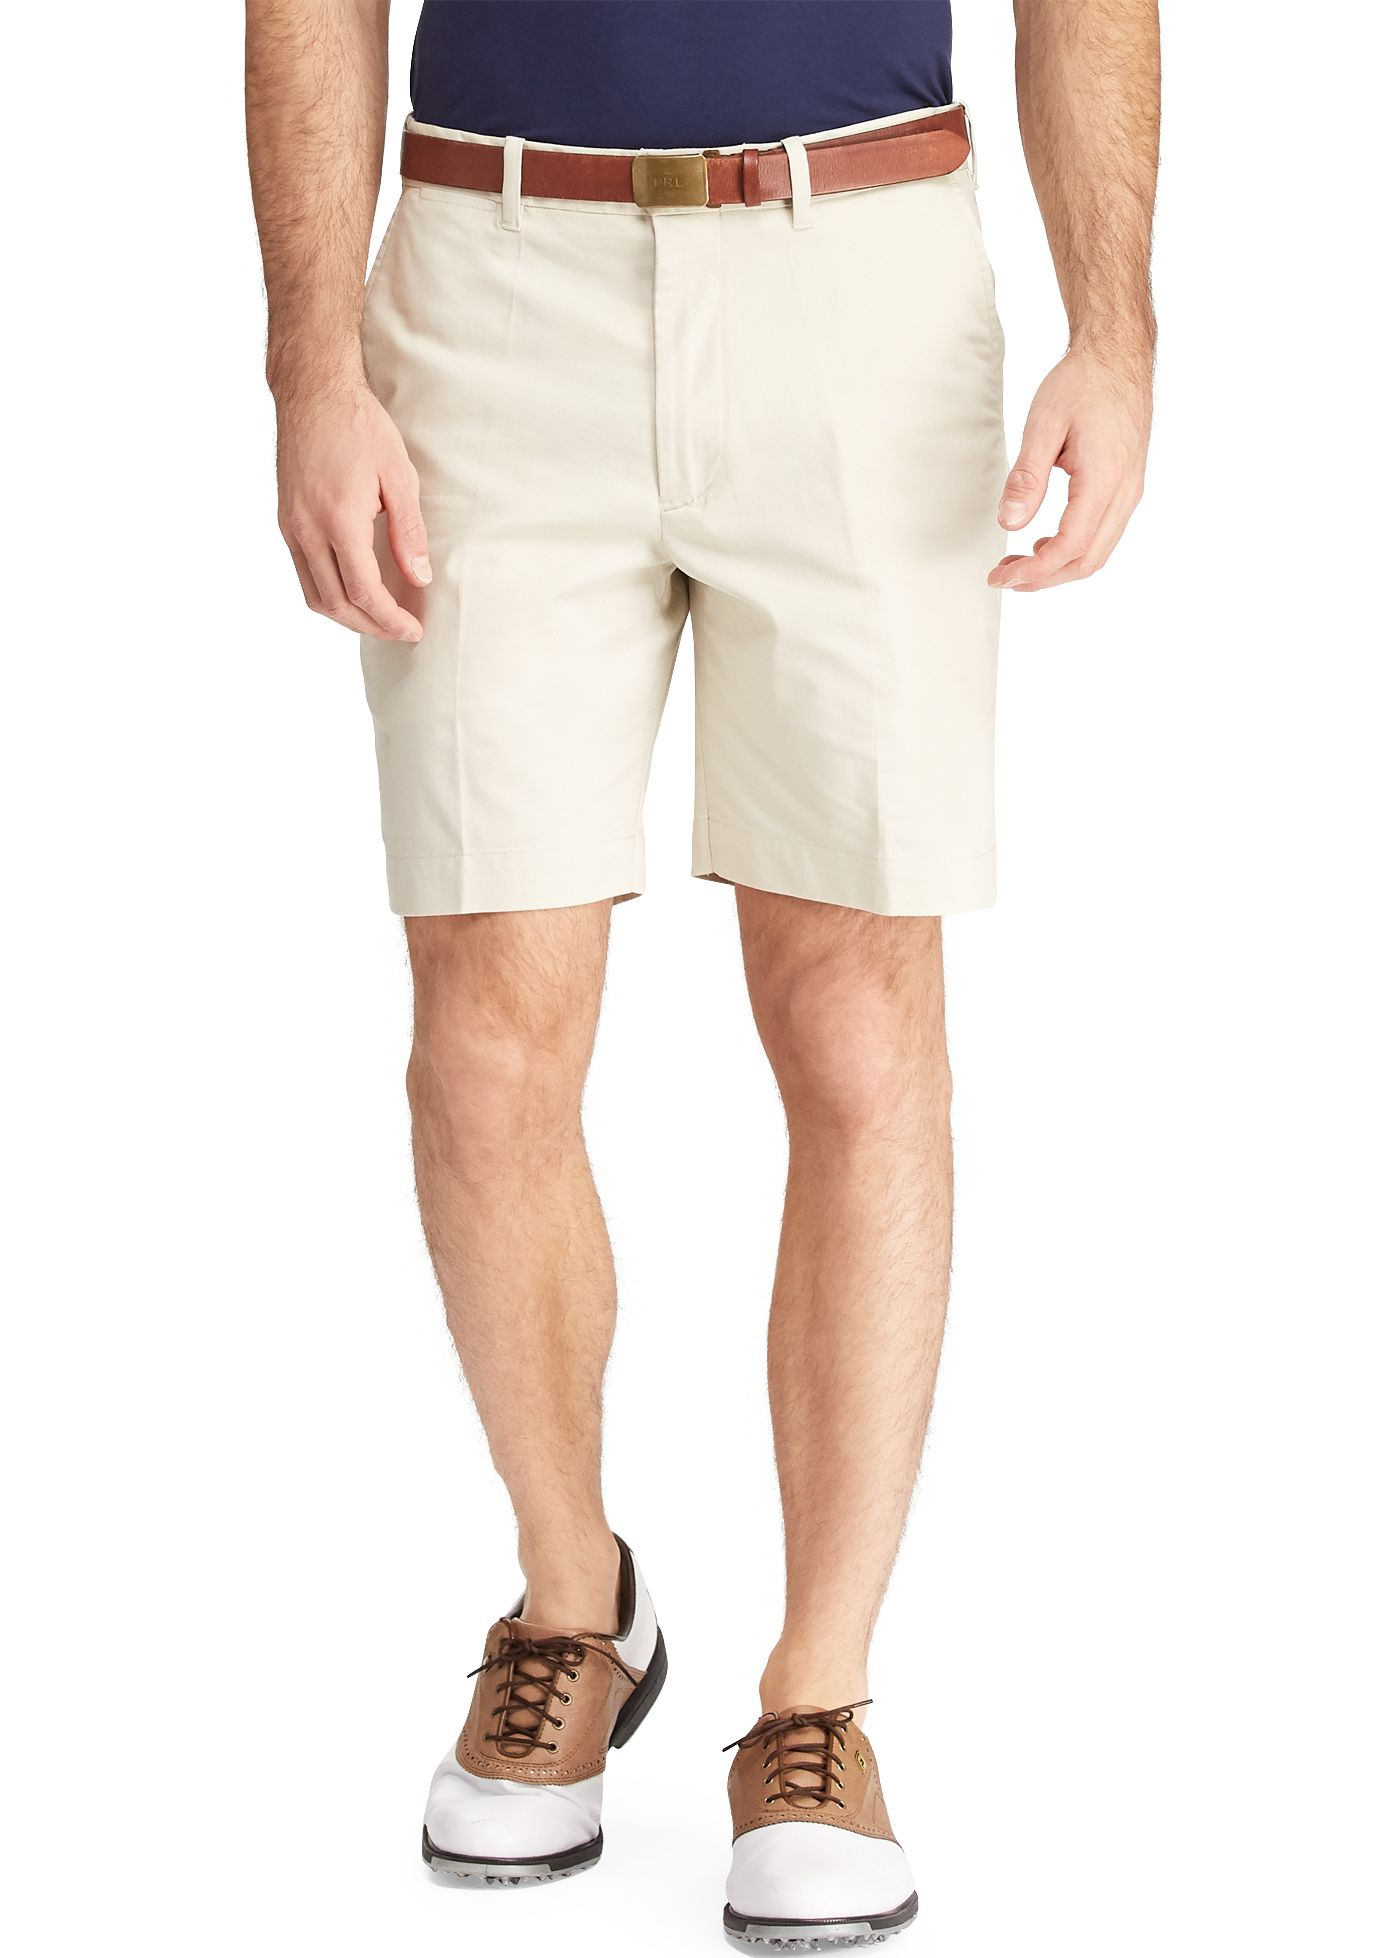 Polo Golf Men's Performance Chino Golf Shorts